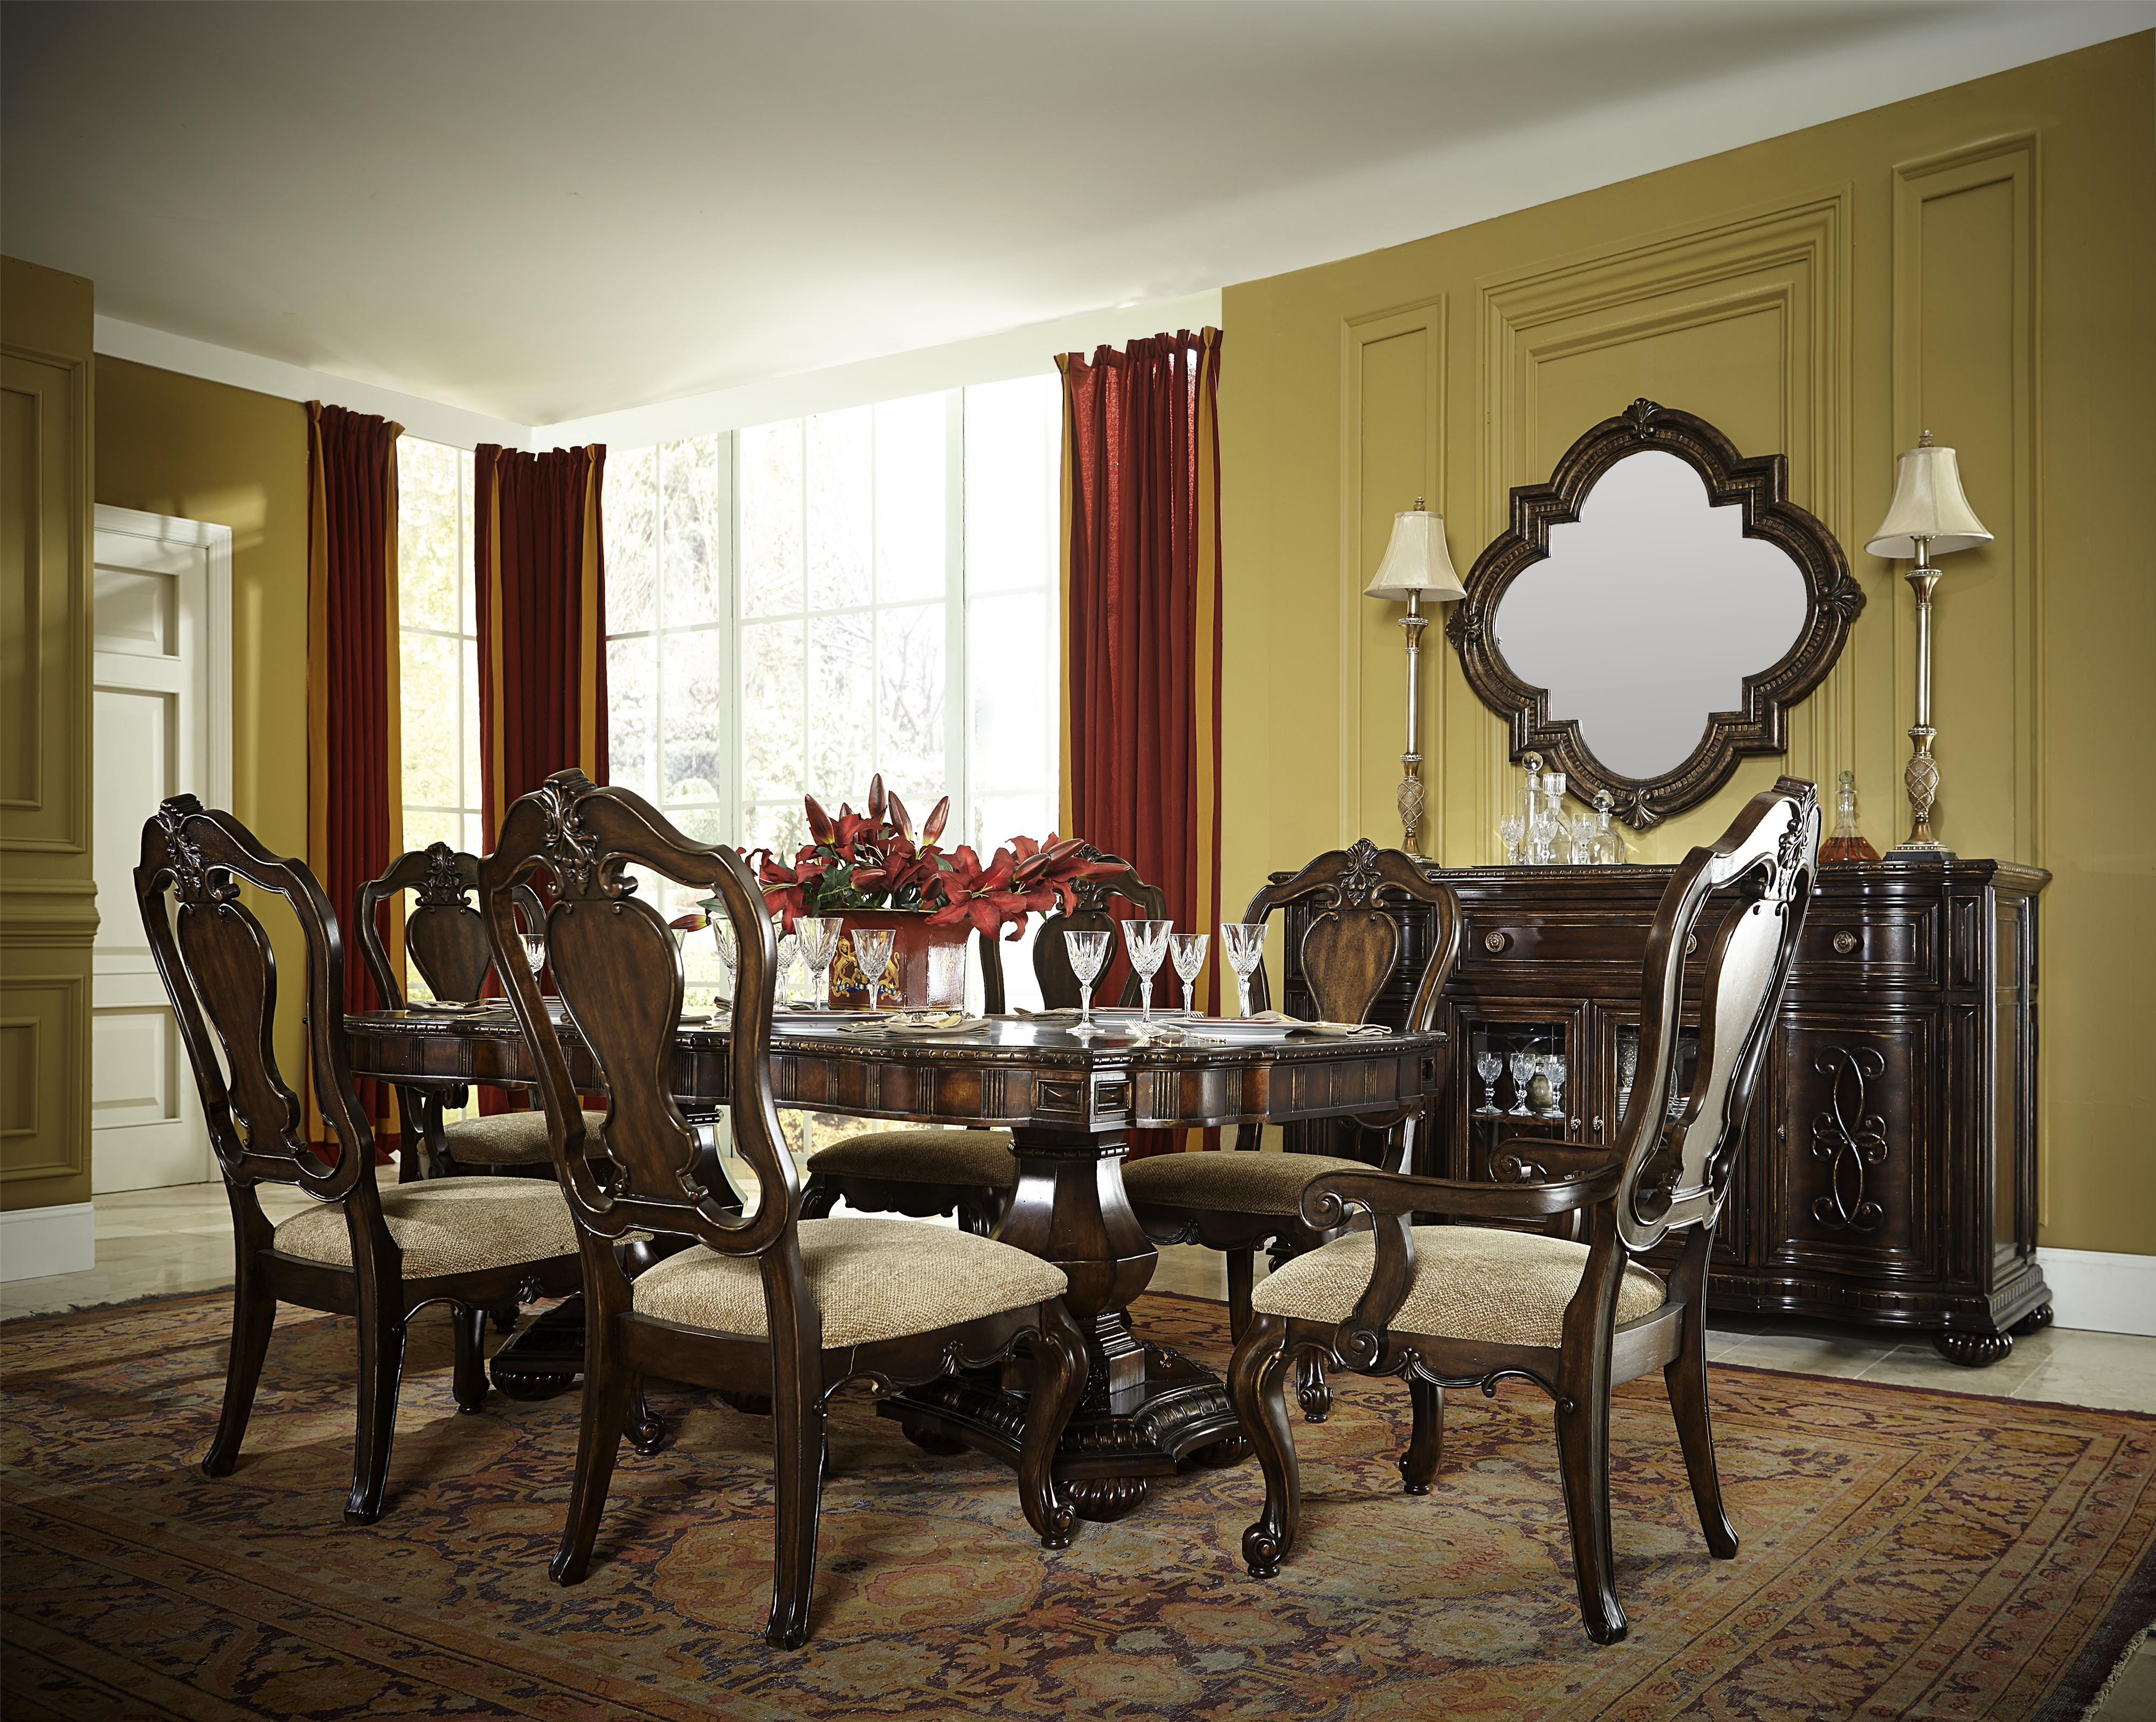 Legacy Classic La Bella Vita Formal Dining Room Group - Item Number: 4200 Dining Room Group 1